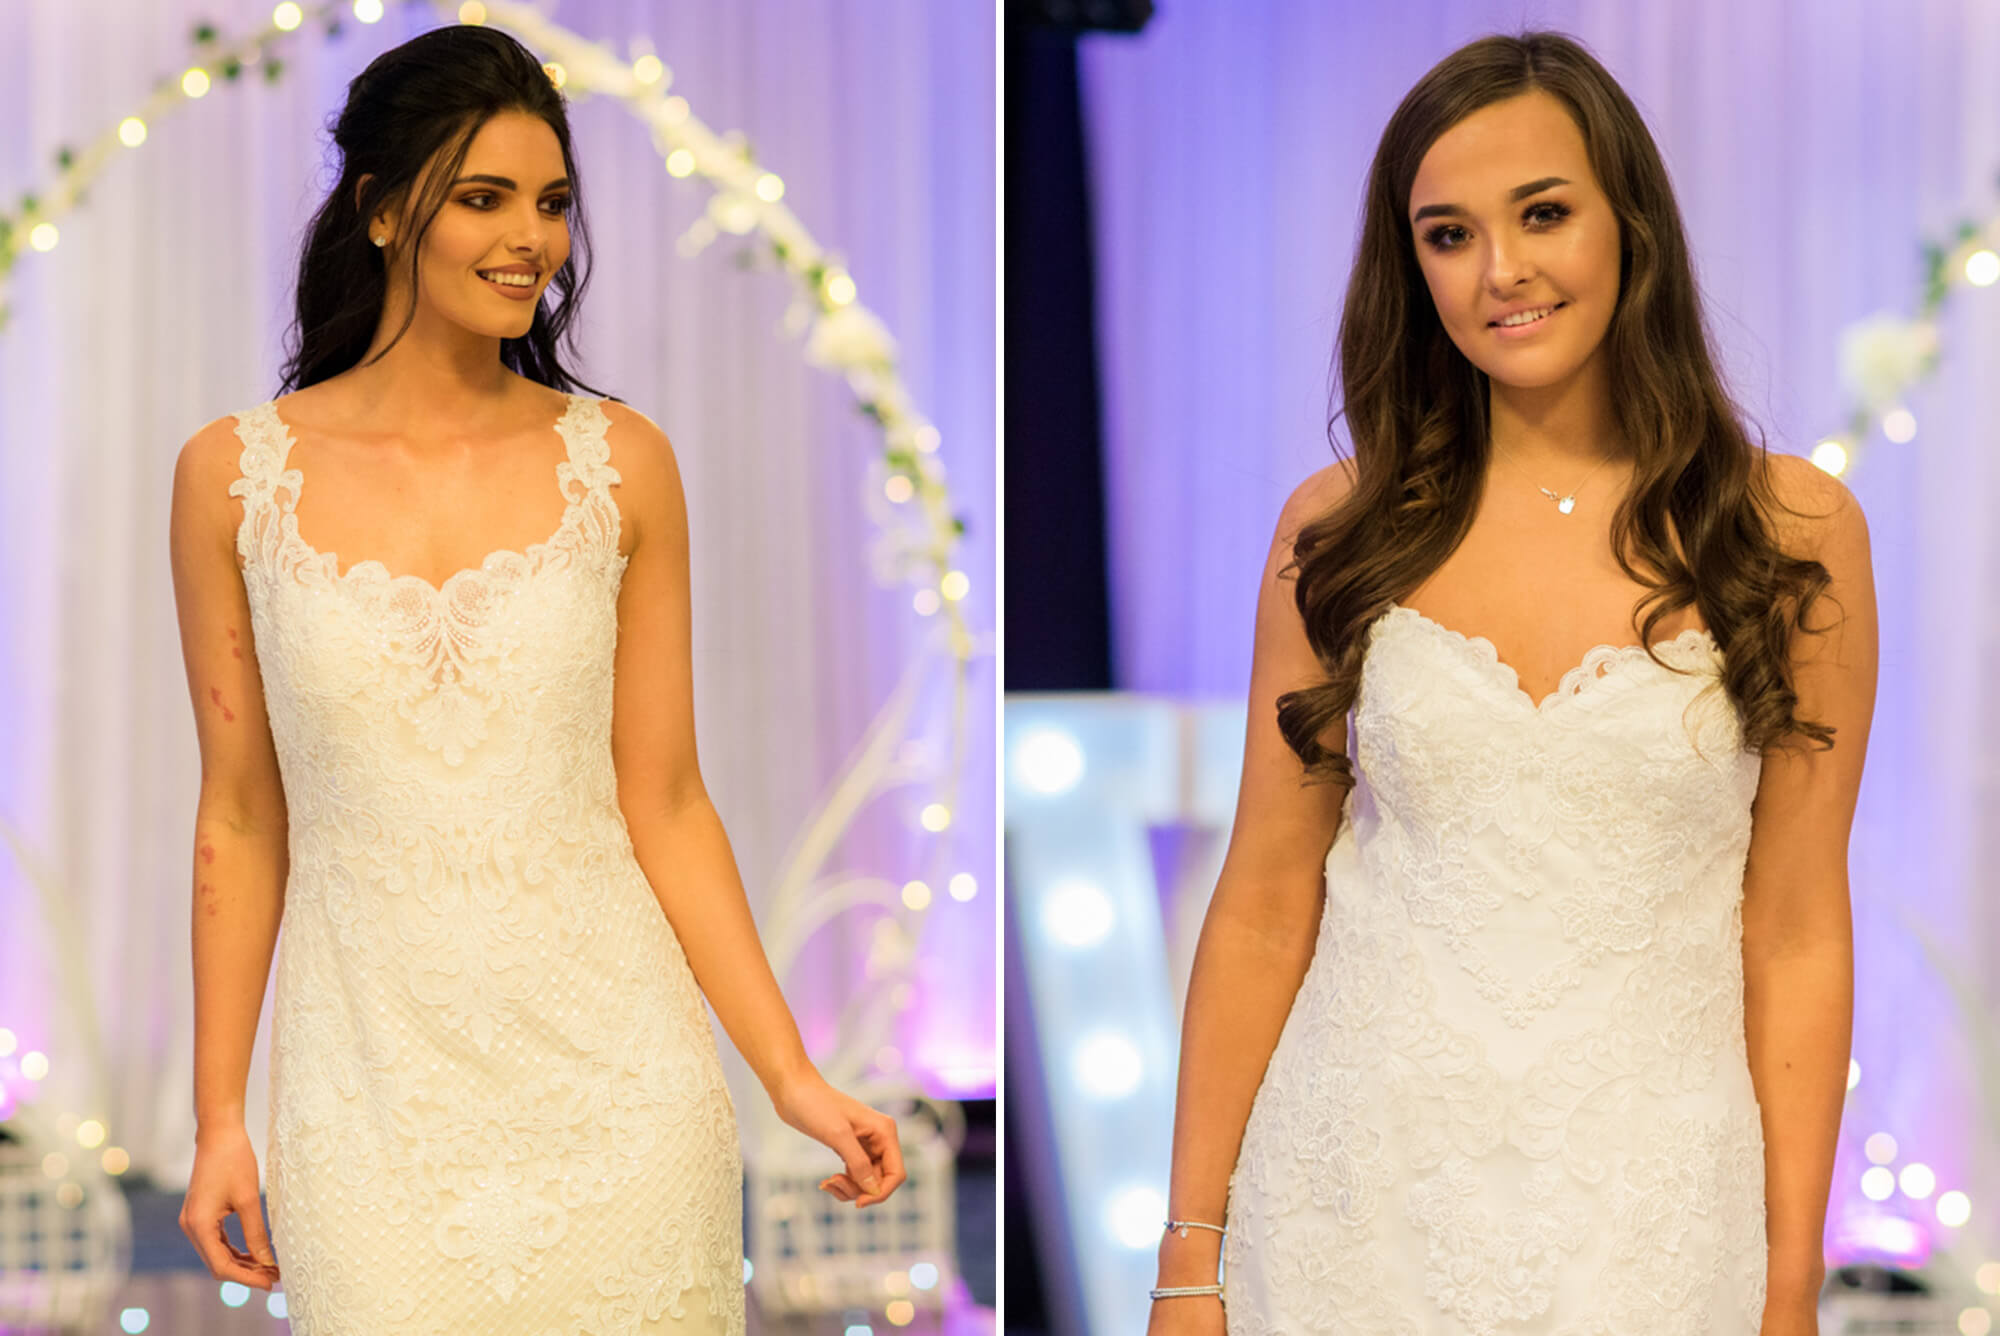 Brides on catwalk in Edinburgh Wedding fair